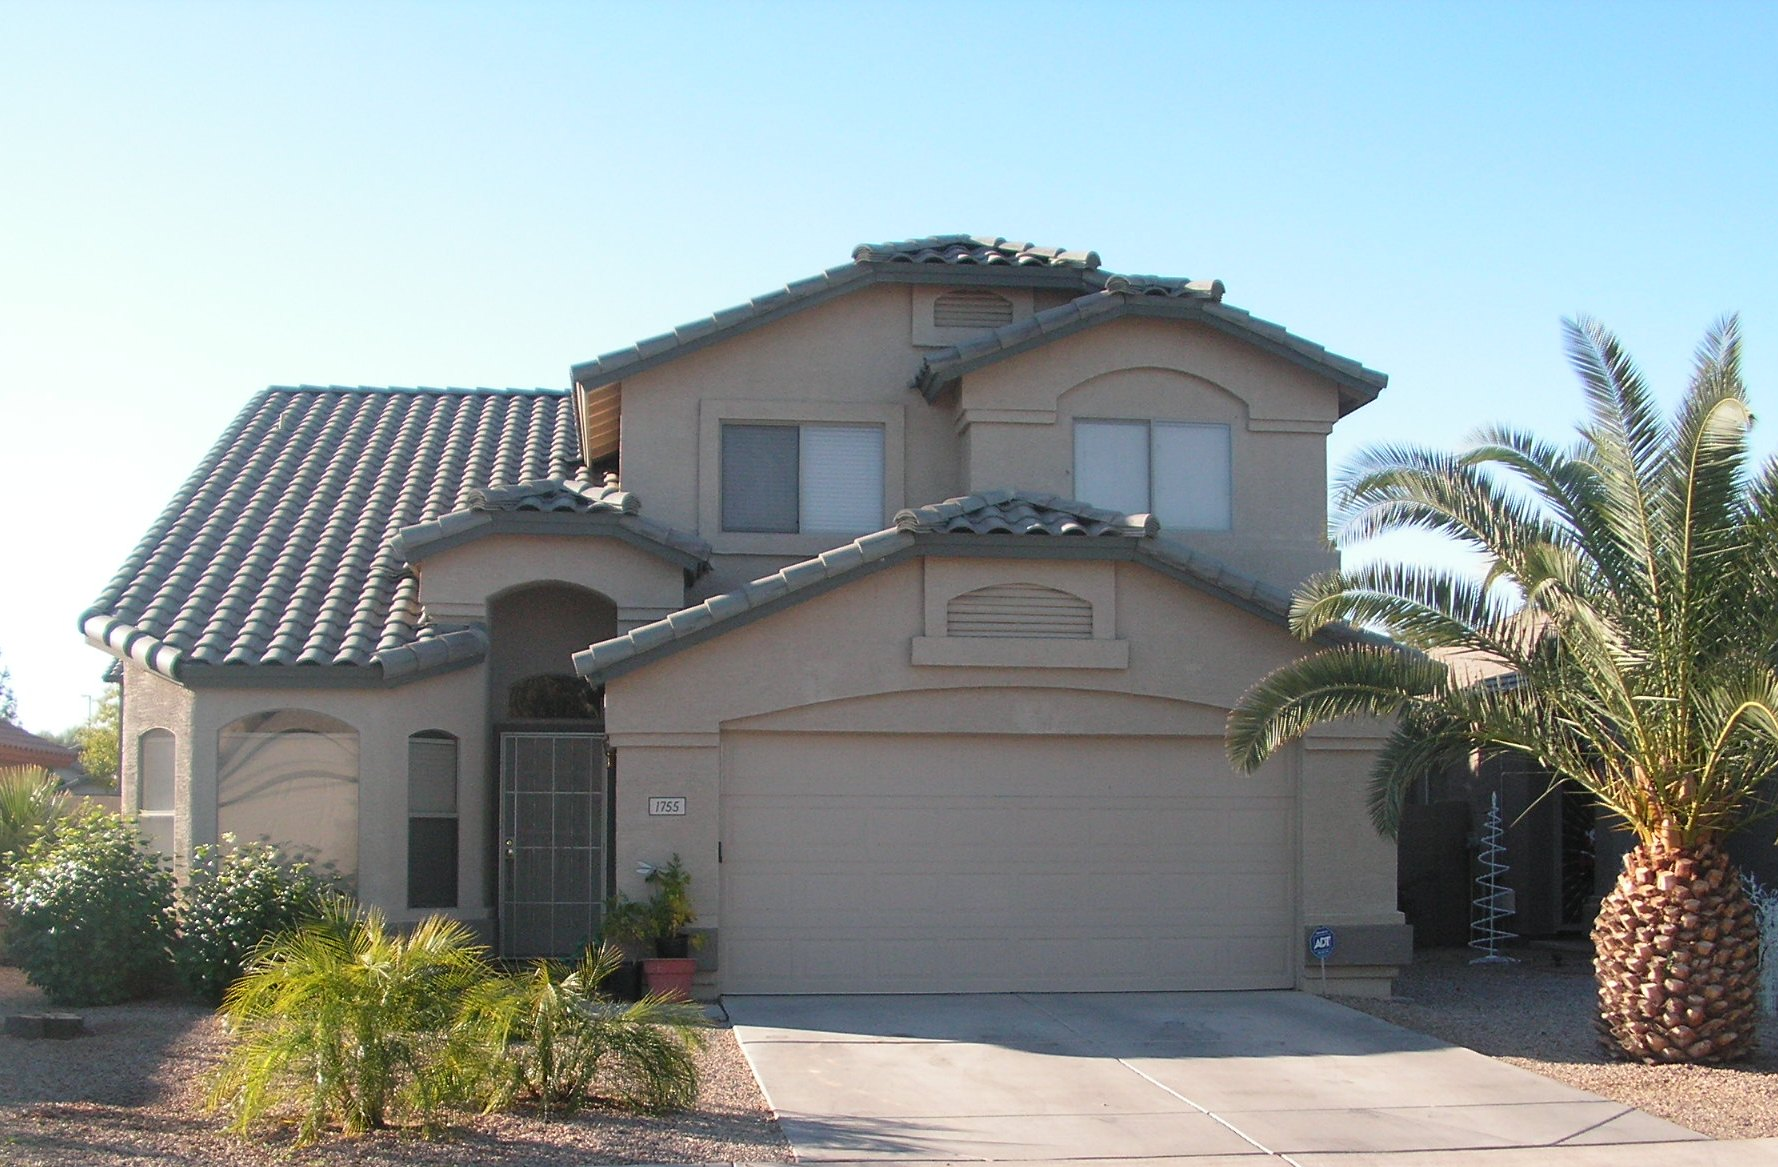 House for sale Mesa AZ, Scott Whitwam